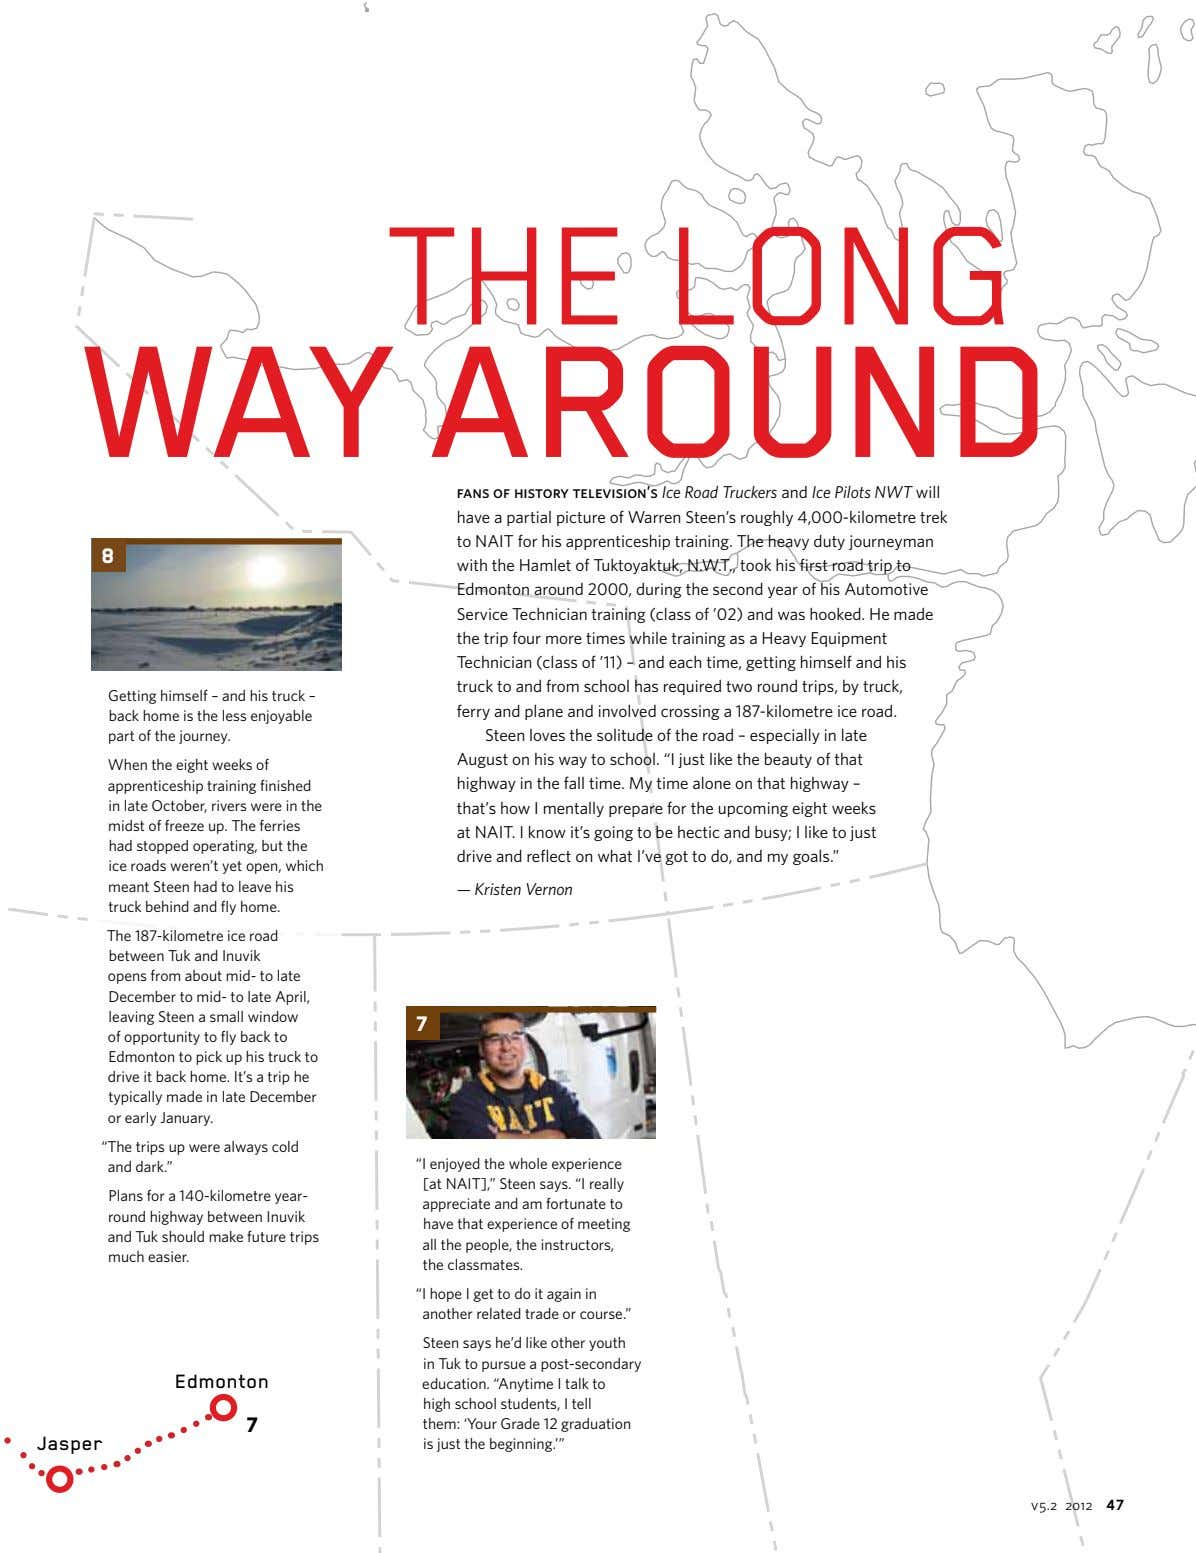 the long way arouNd fans of history television's Ice Road Truckers and Ice Pilots NWT will